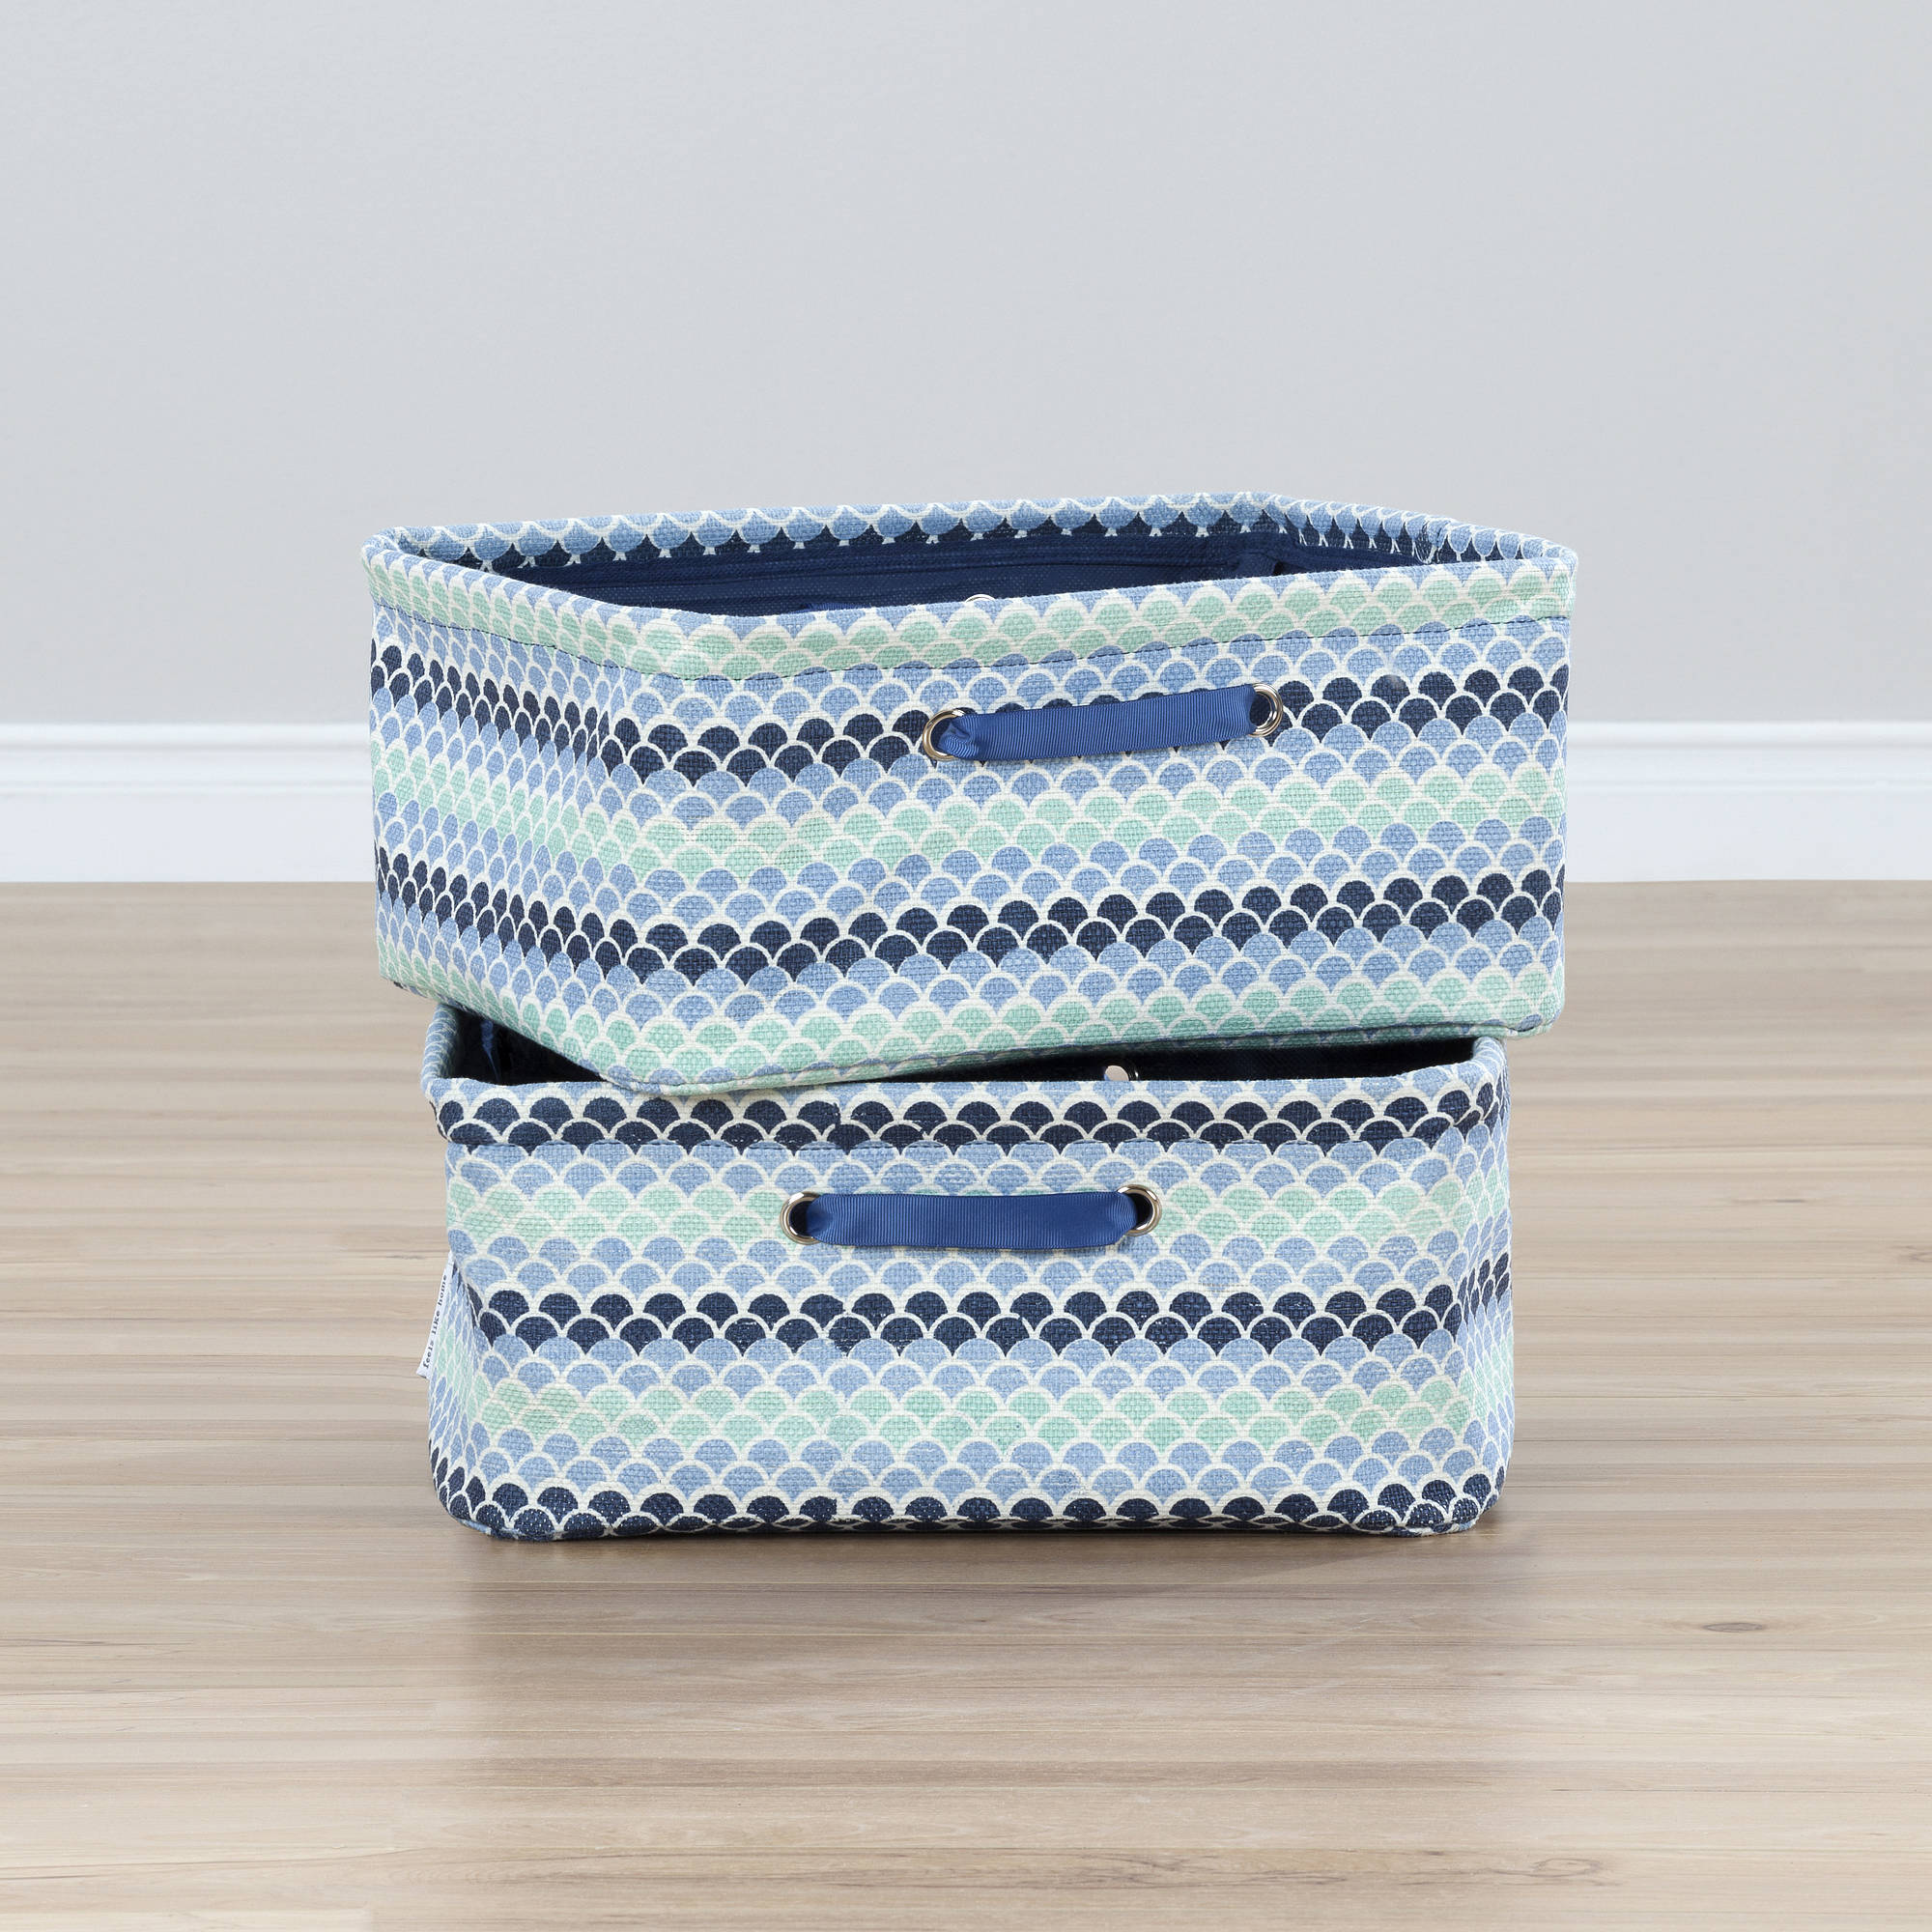 South Shore Storit Nightstand Baskets, 2pk, Multiple Colors